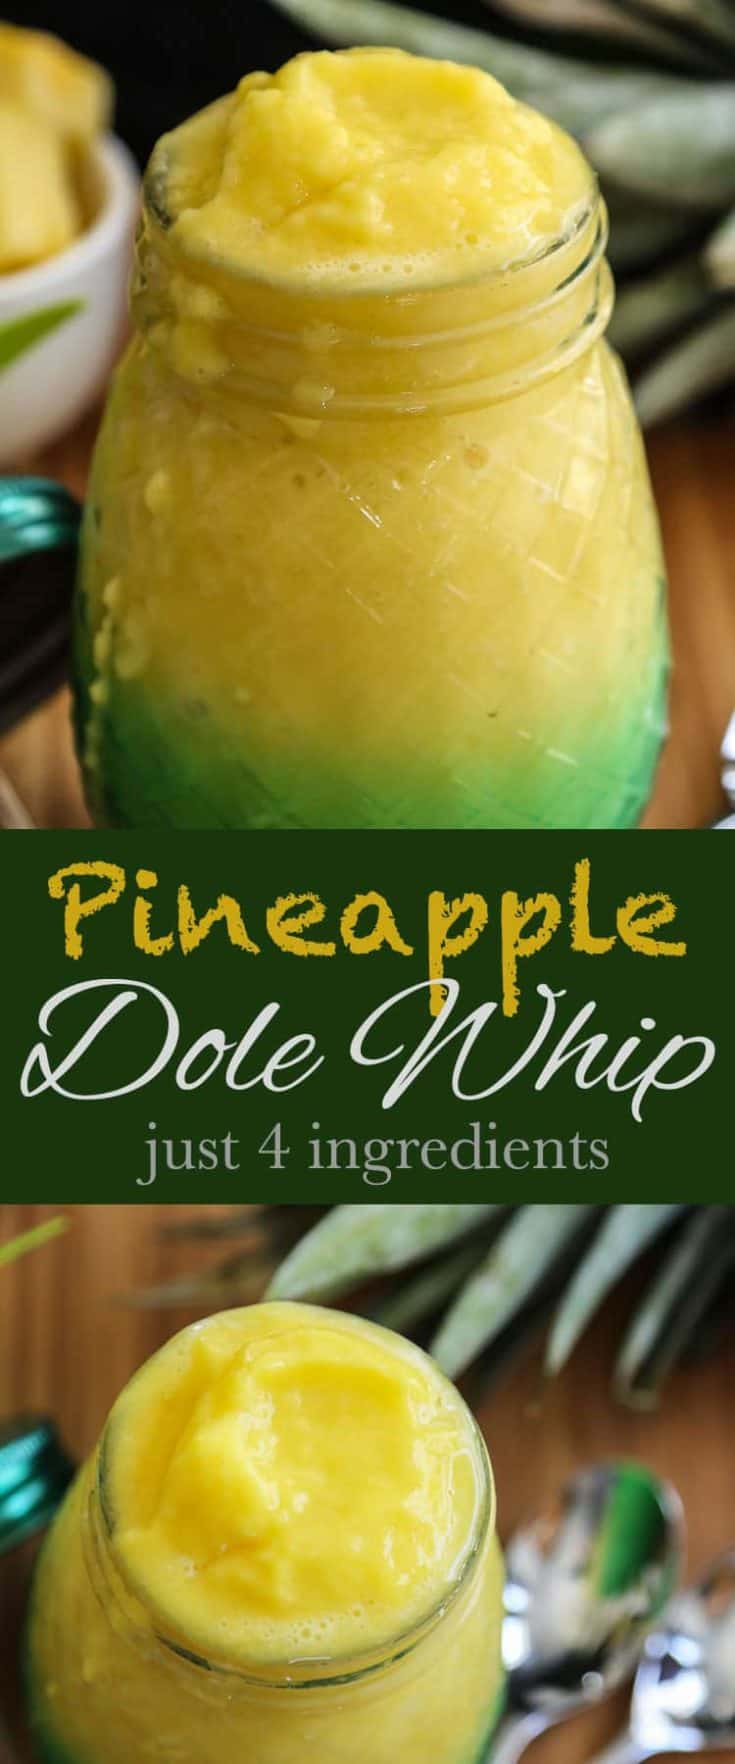 This easy Homemade Pineapple Dole Whip recipes uses just 4 ingredients - the frozen fresh taste is amazing and just like the Disney version. #dolewhip #pineapple #disneycopycat